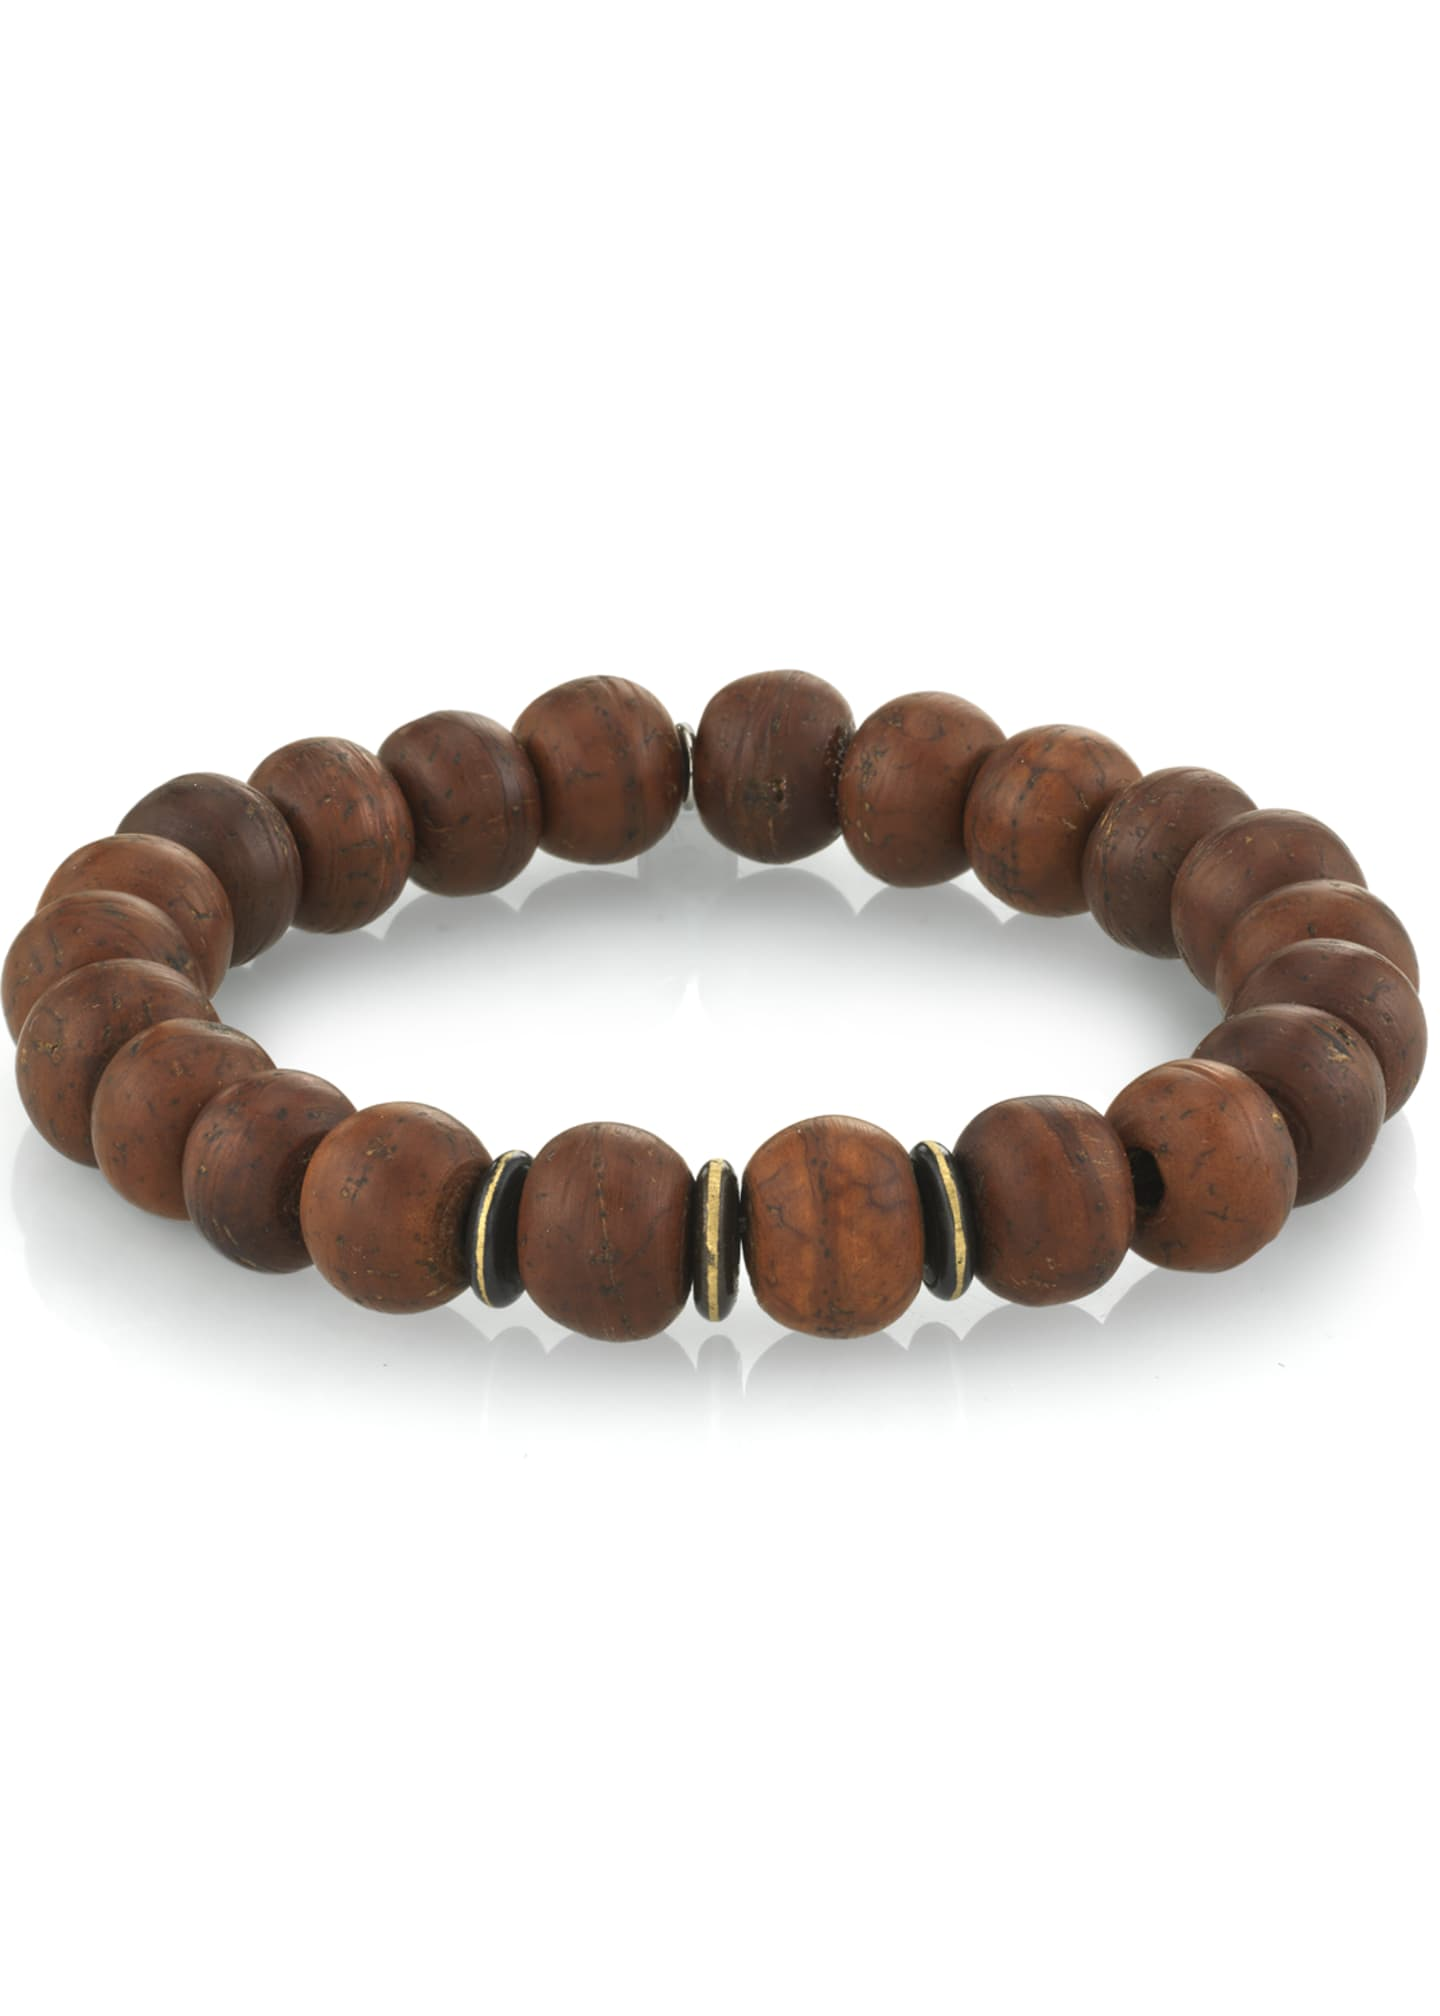 Image 1 of 1: Men's Wood Bead Bracelet w/ Spacers, Size M